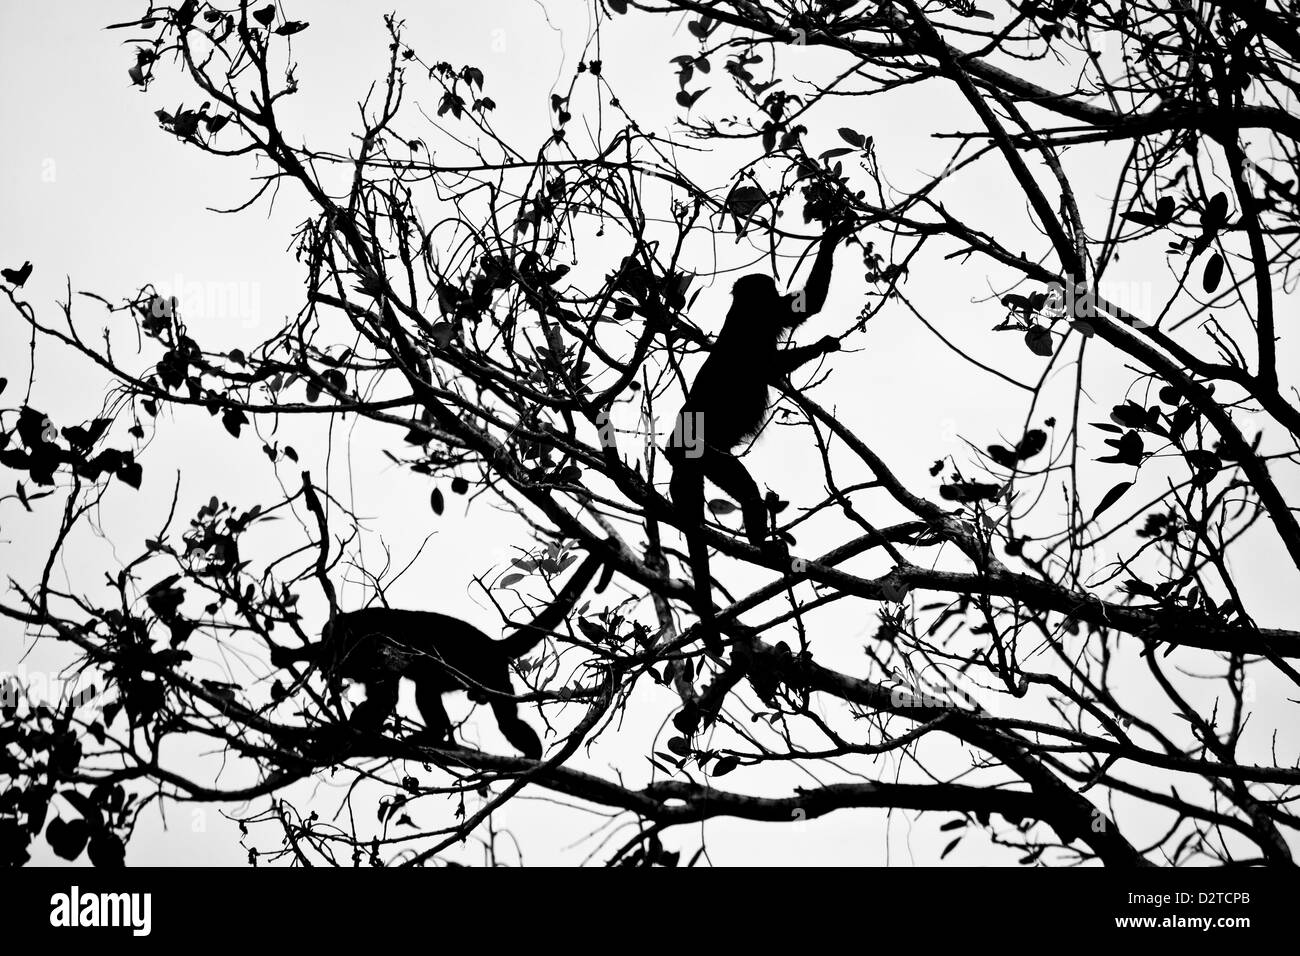 The silhouette of two Howler monkeys in Soberania national park, Republic of Panama. - Stock Image